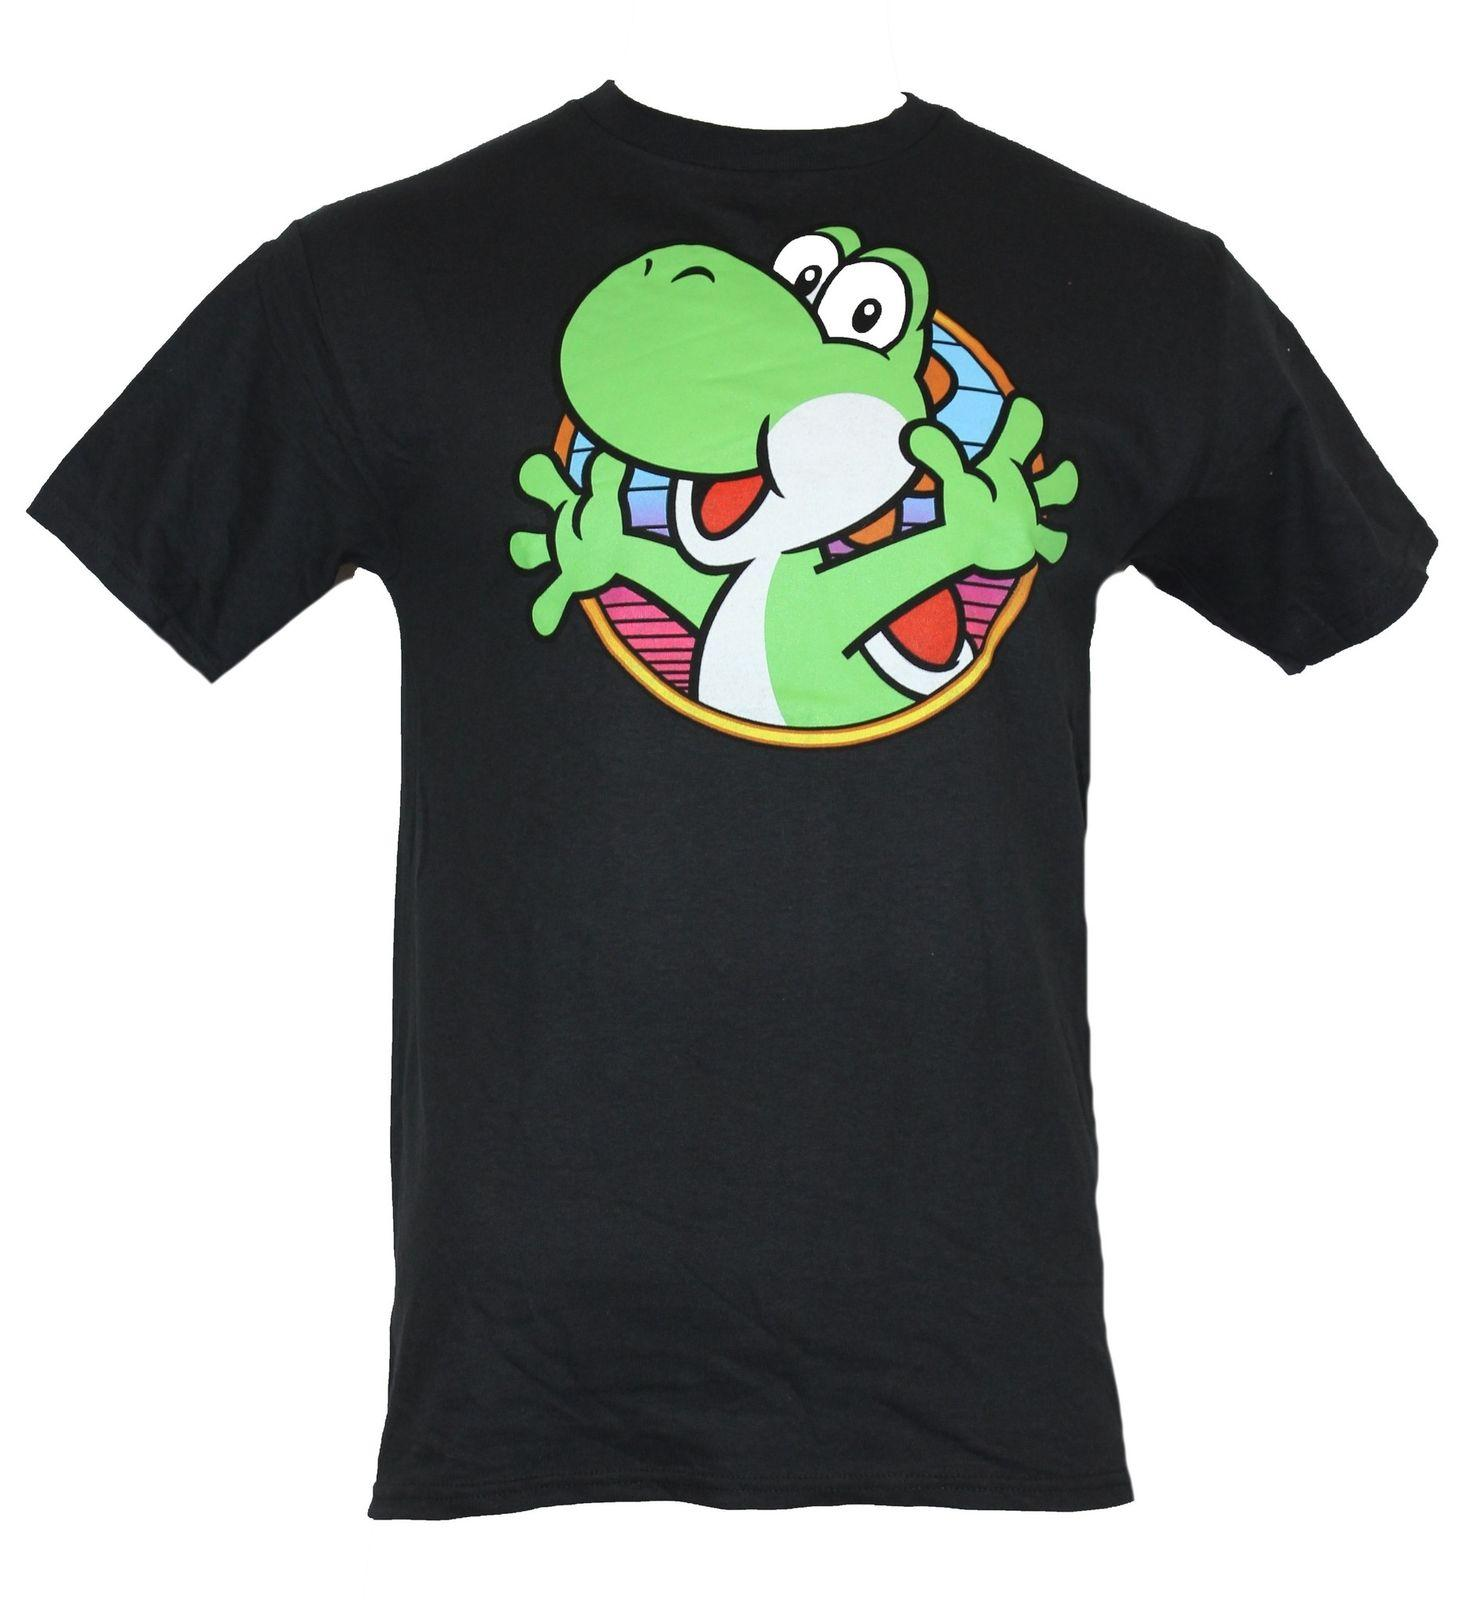 396199dd0 Super Mario Brothers Mens T Shirt Yoshi Popping From A Circle Image T Shirt  24 Hours Buy Cool Shirts Online From Crazytomorrow40, $11.58| DHgate.Com